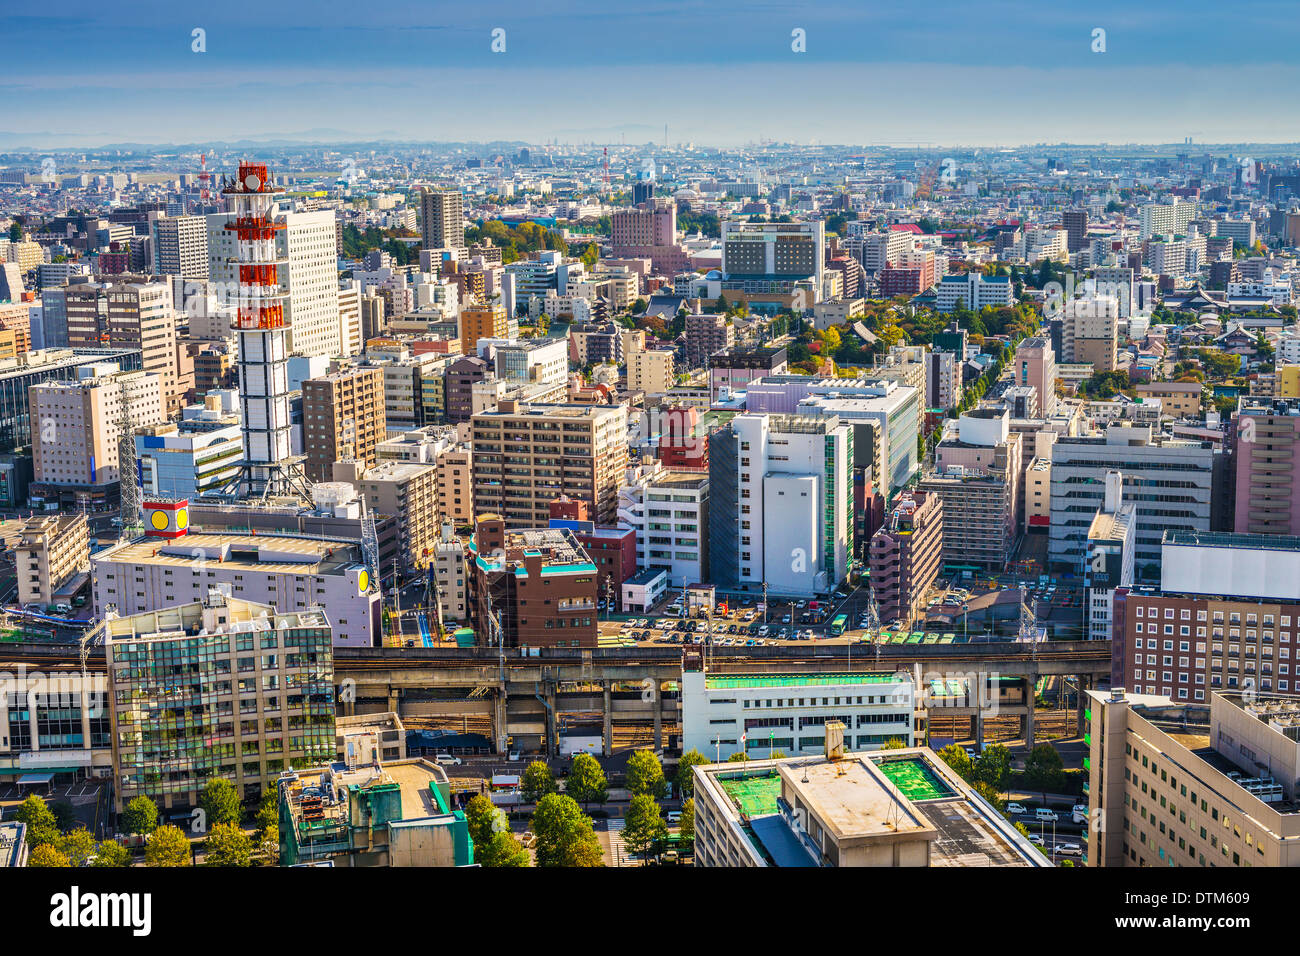 Sendai, Japan cityscape in the Central Ward. - Stock Image